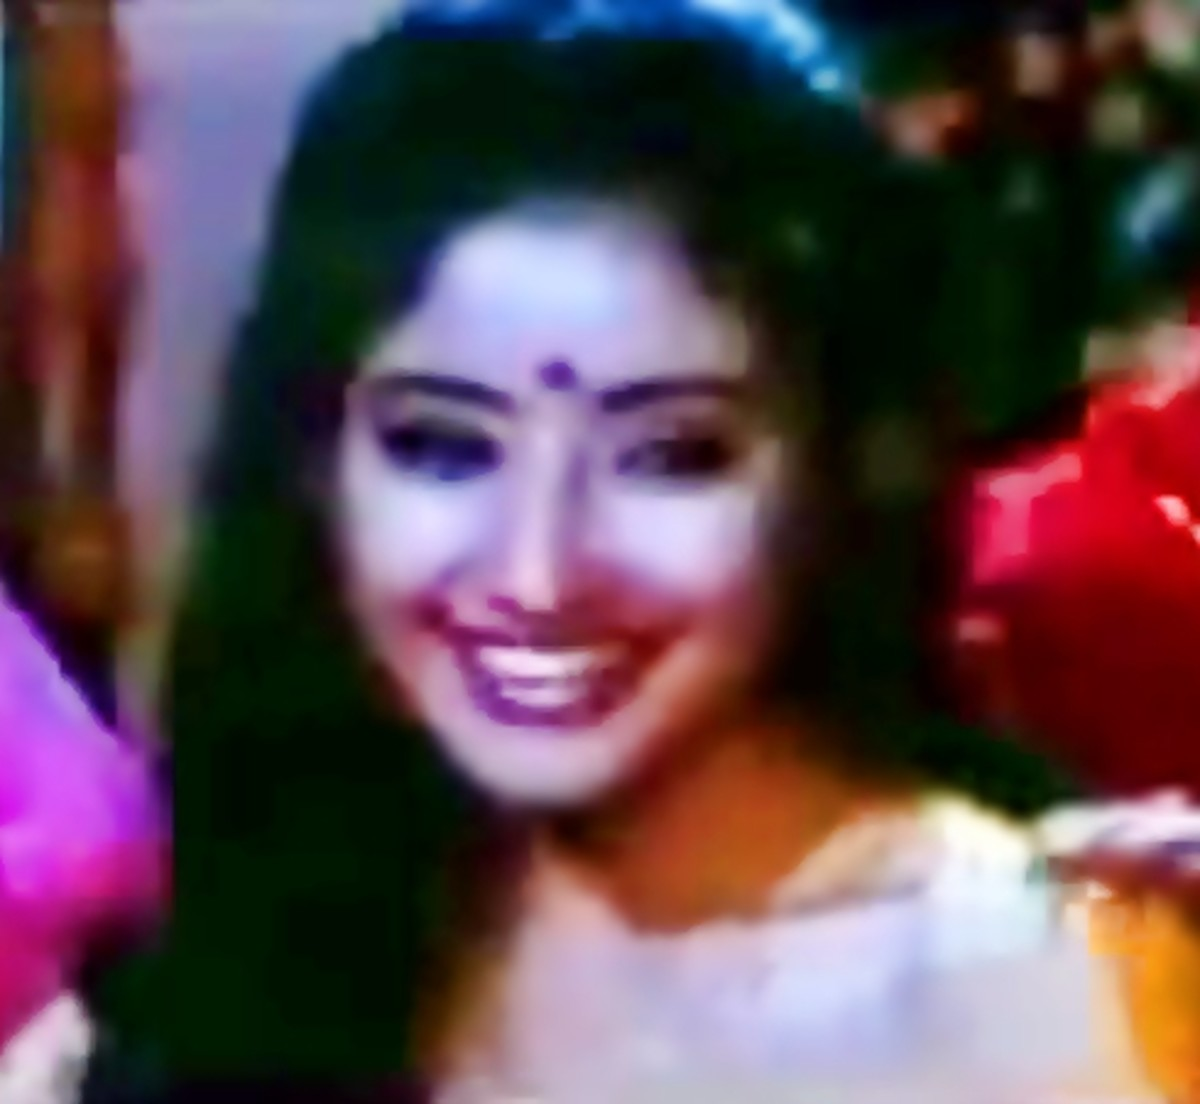 """Manisha Koirala in """"Banno teri ankhiyan"""" from Dushmani:  a song for the haldi ceremony, part of preparing the bride for marriage."""